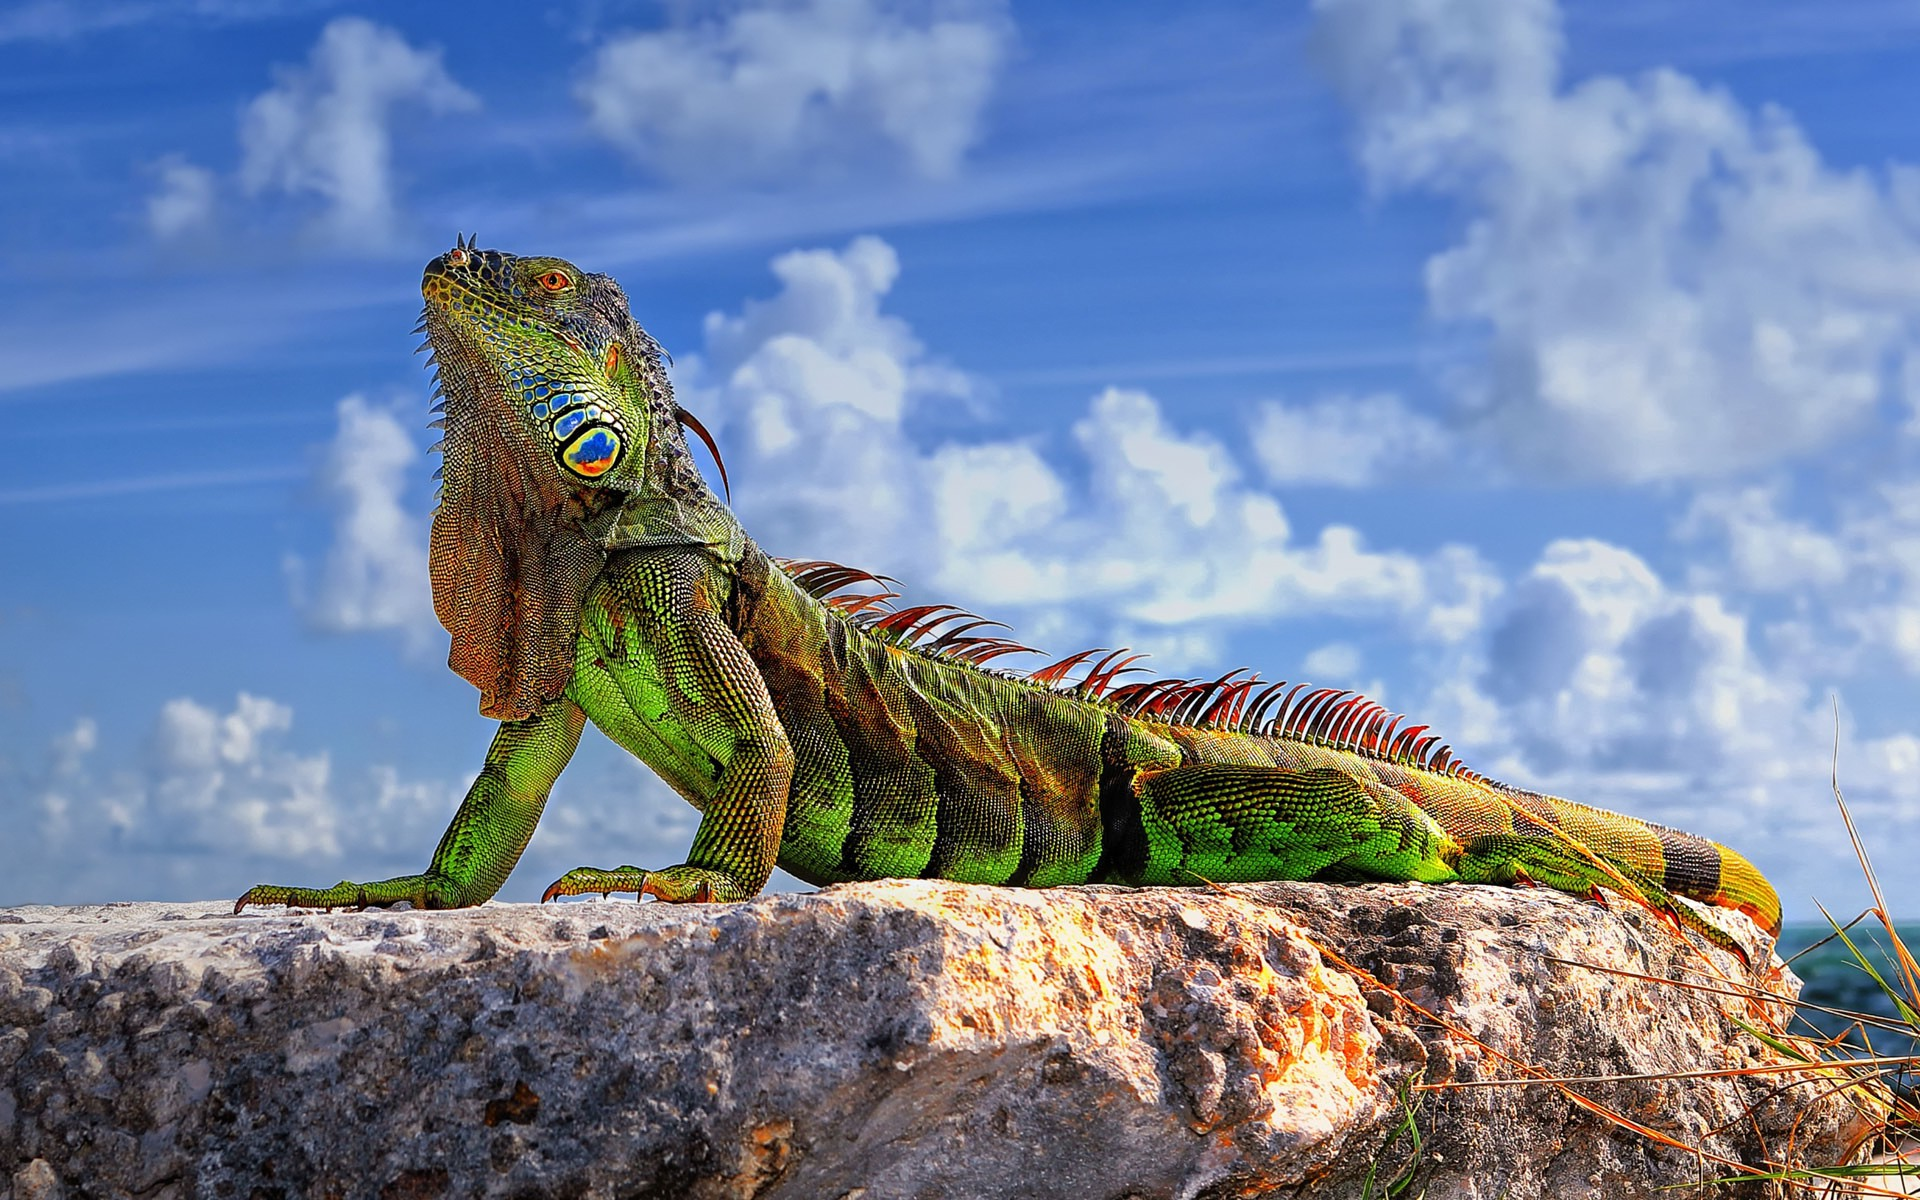 Iguanas images Iguana HD wallpaper and background photos 40692138 1920x1200